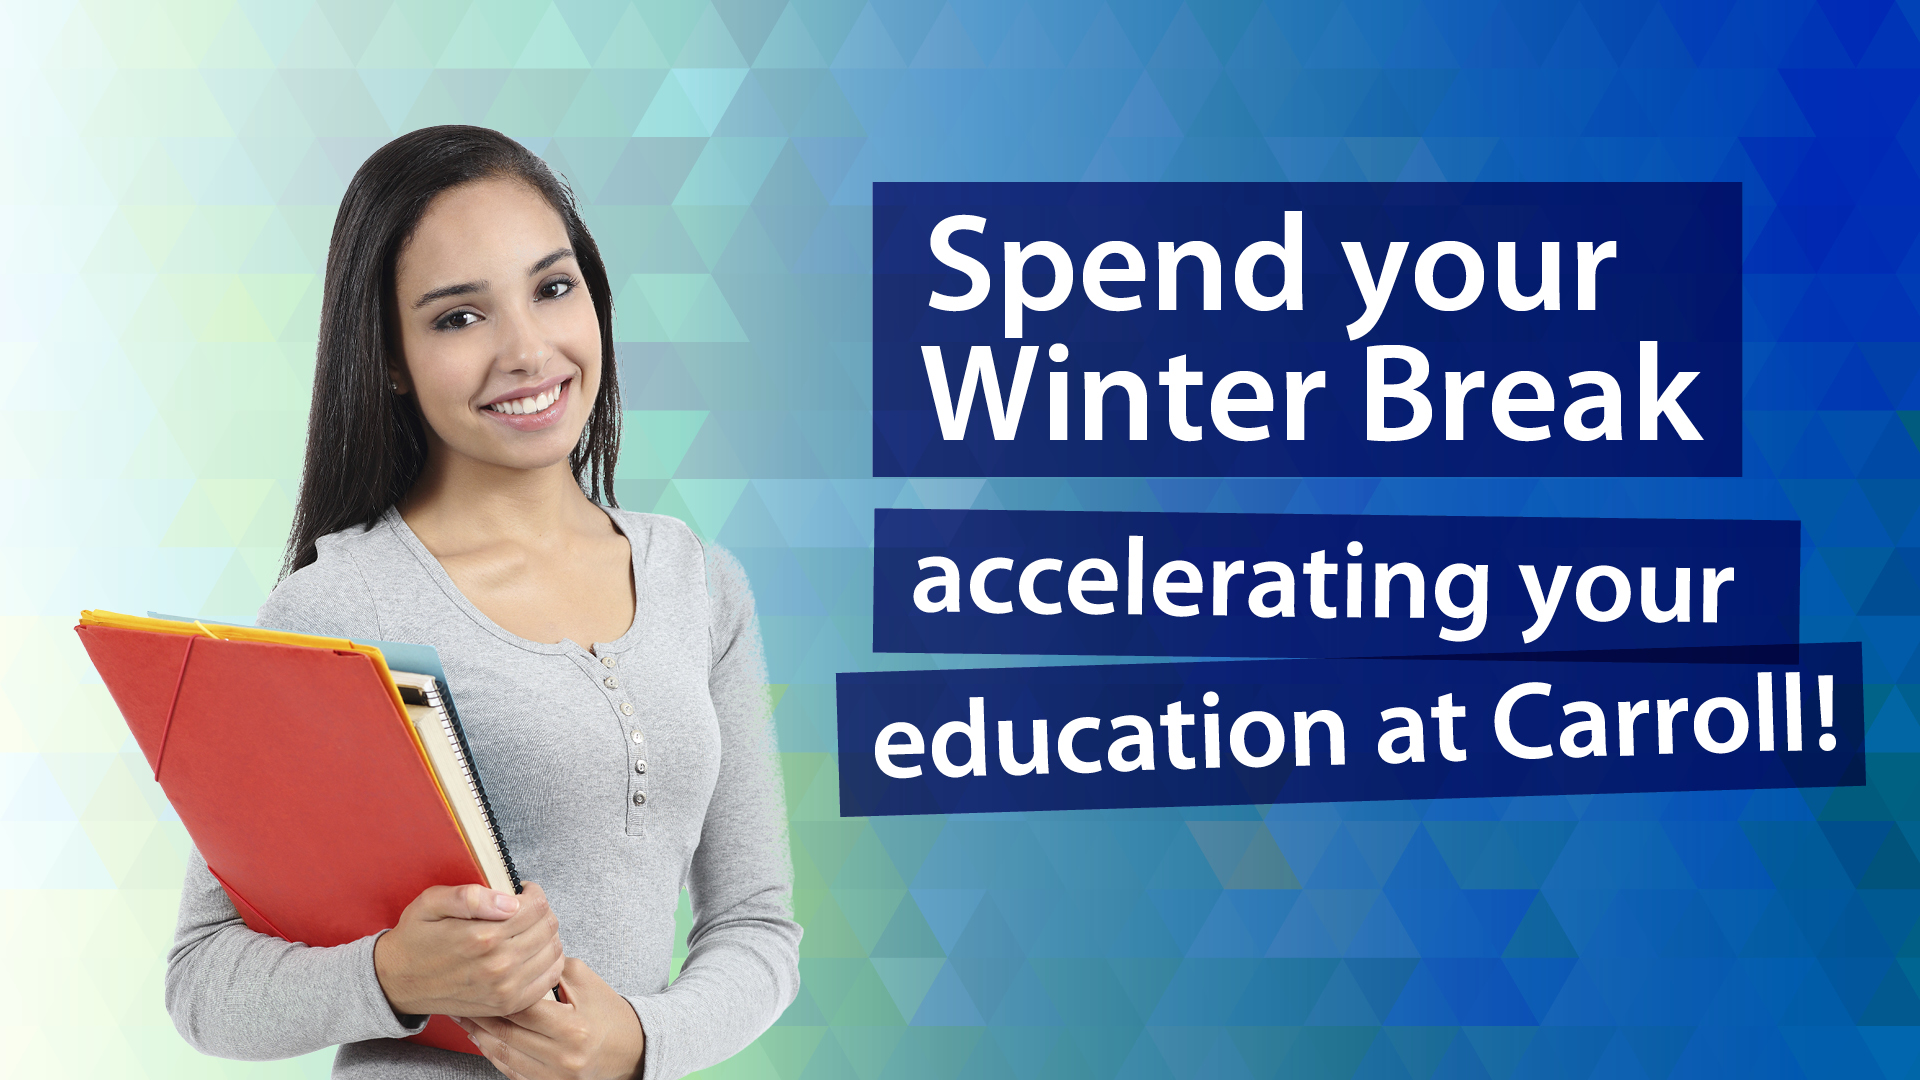 Visiting Students - Spend Winter Break accelerating your education at Carroll!